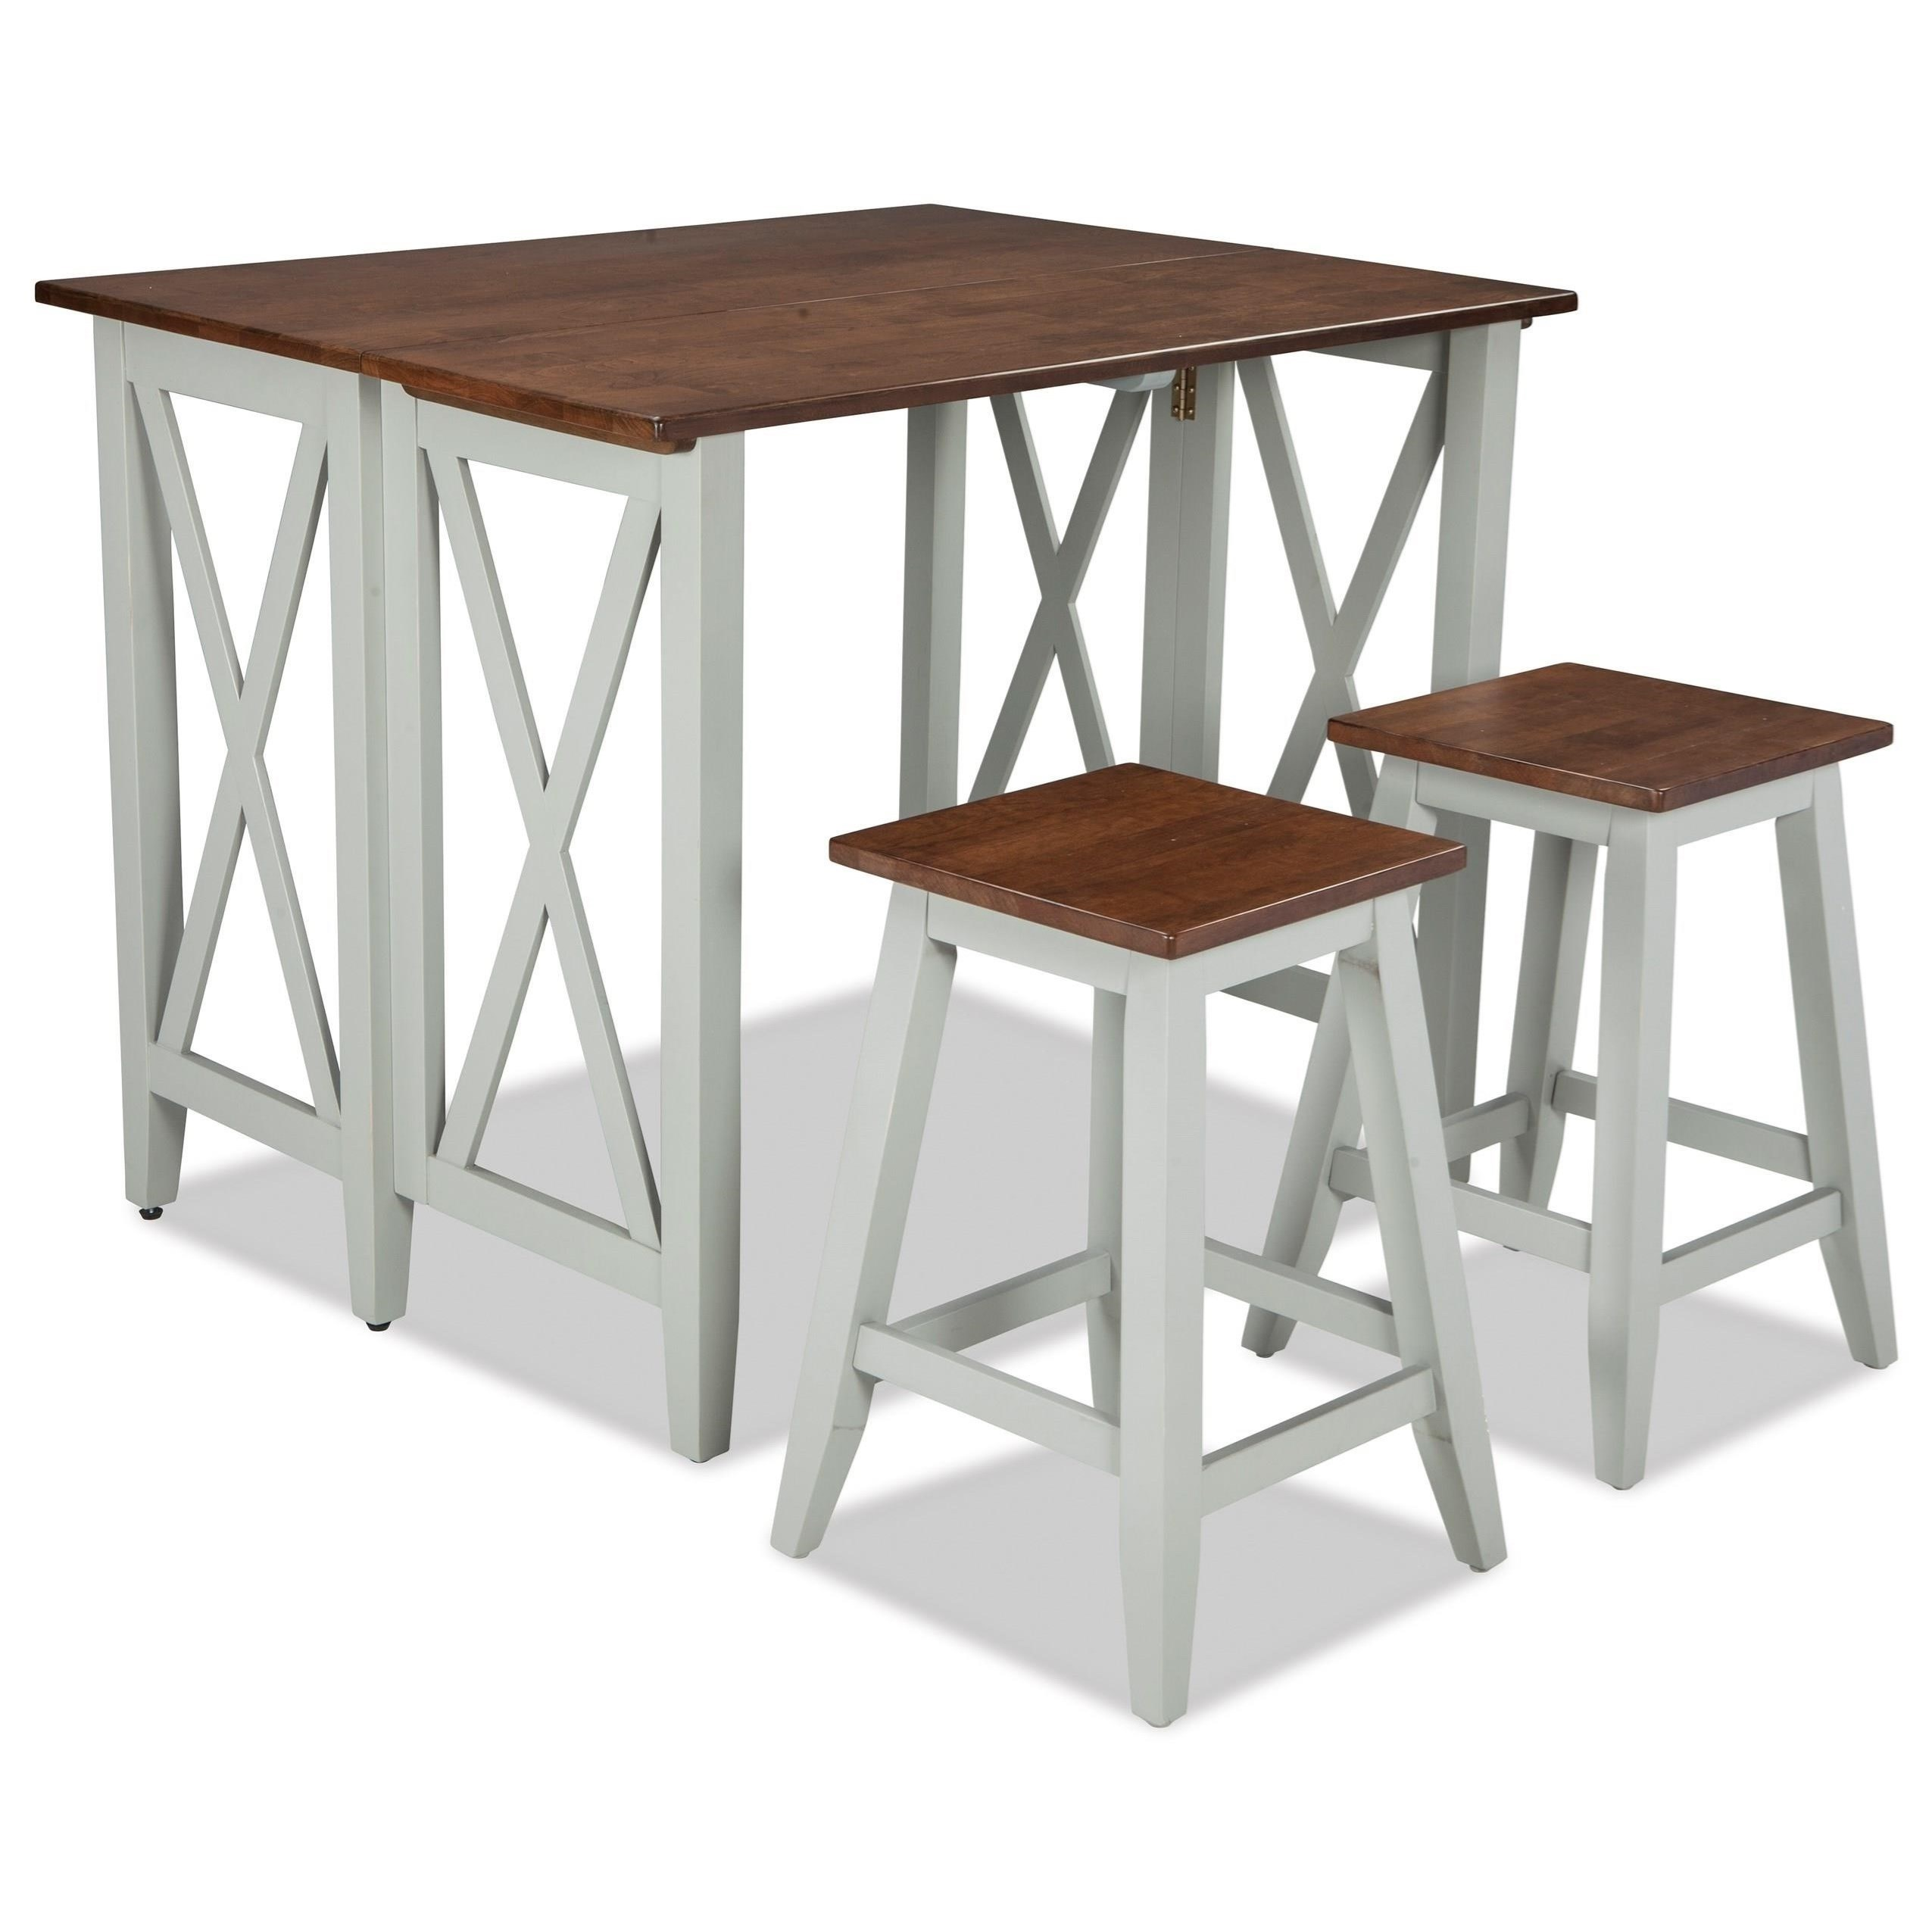 breakfast furniture chairs tabletop christow dining piece bar kitchen table itm set